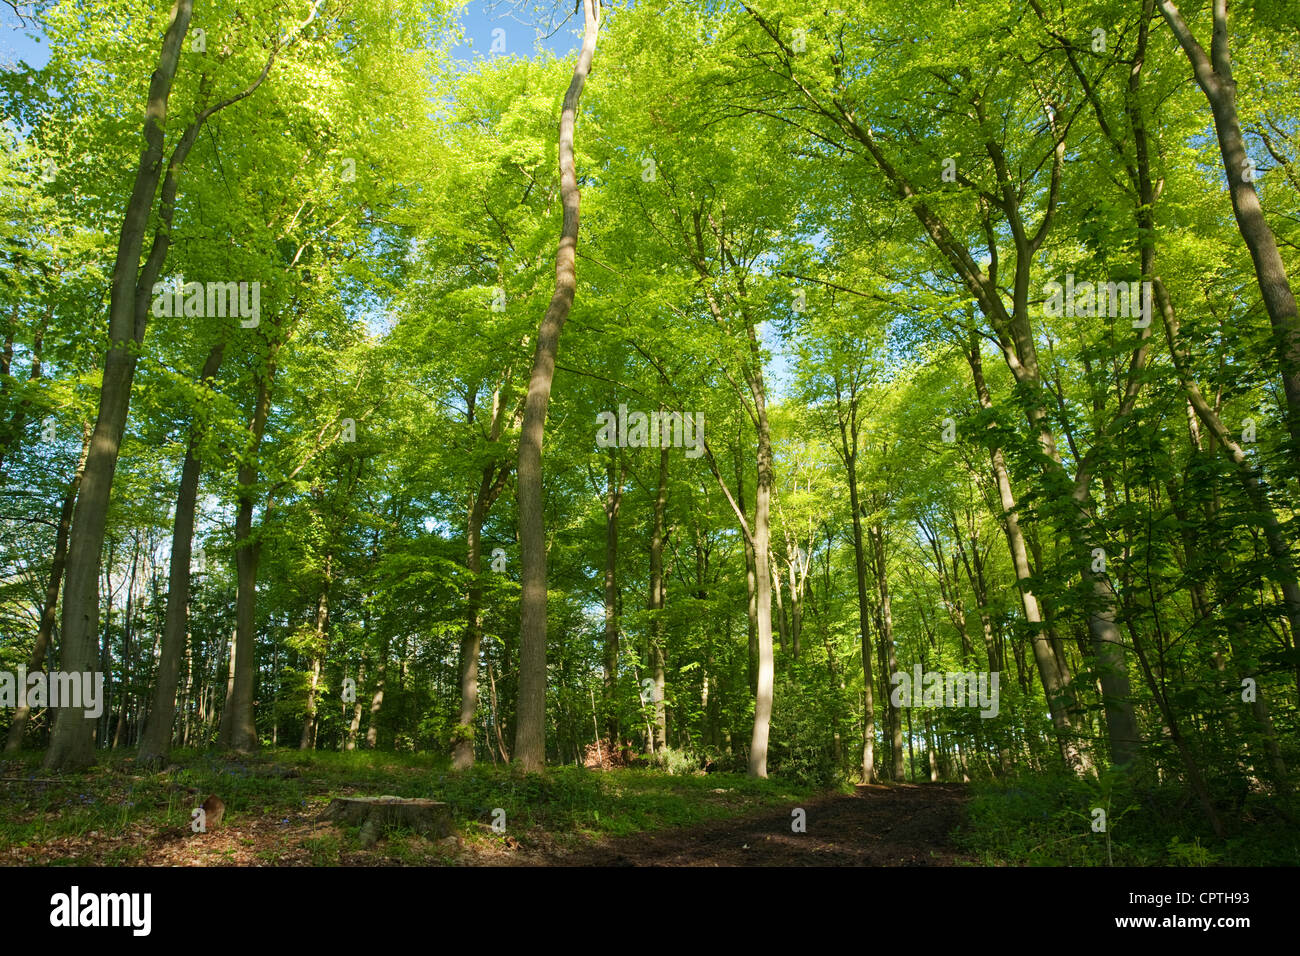 Beech woodland in Spring, Chilterns, Uk - Stock Image